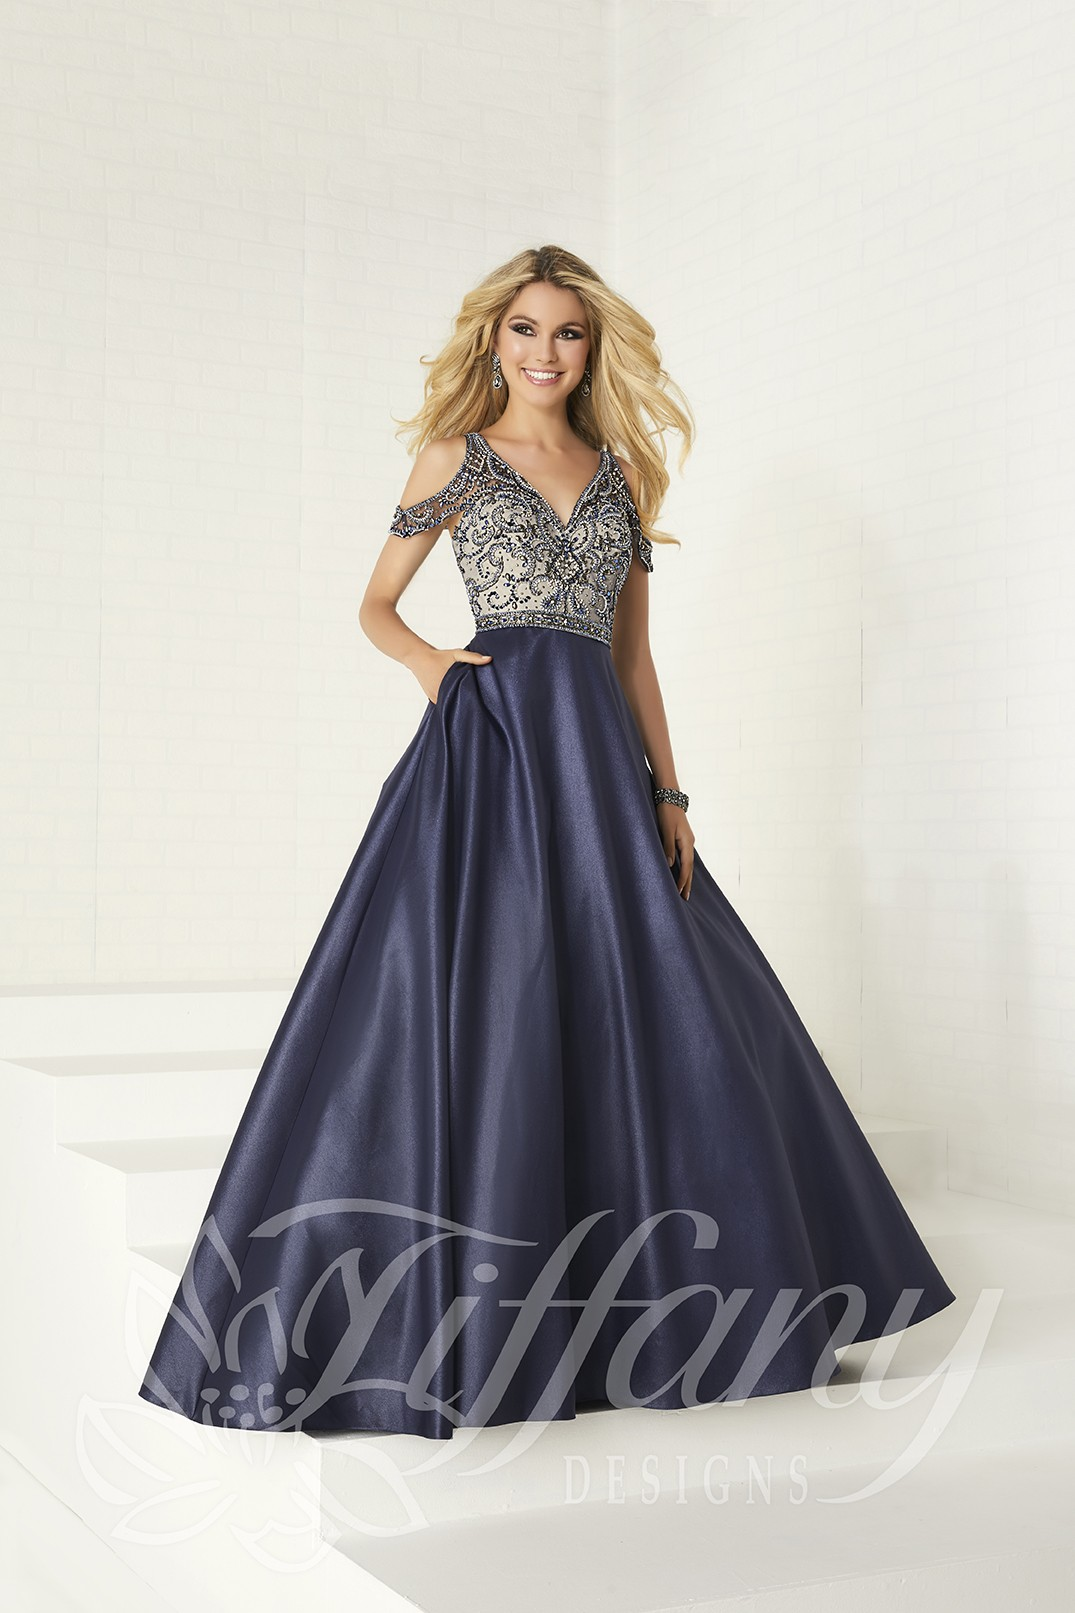 Tiffany Designs 16283 Dress Madamebridal Com